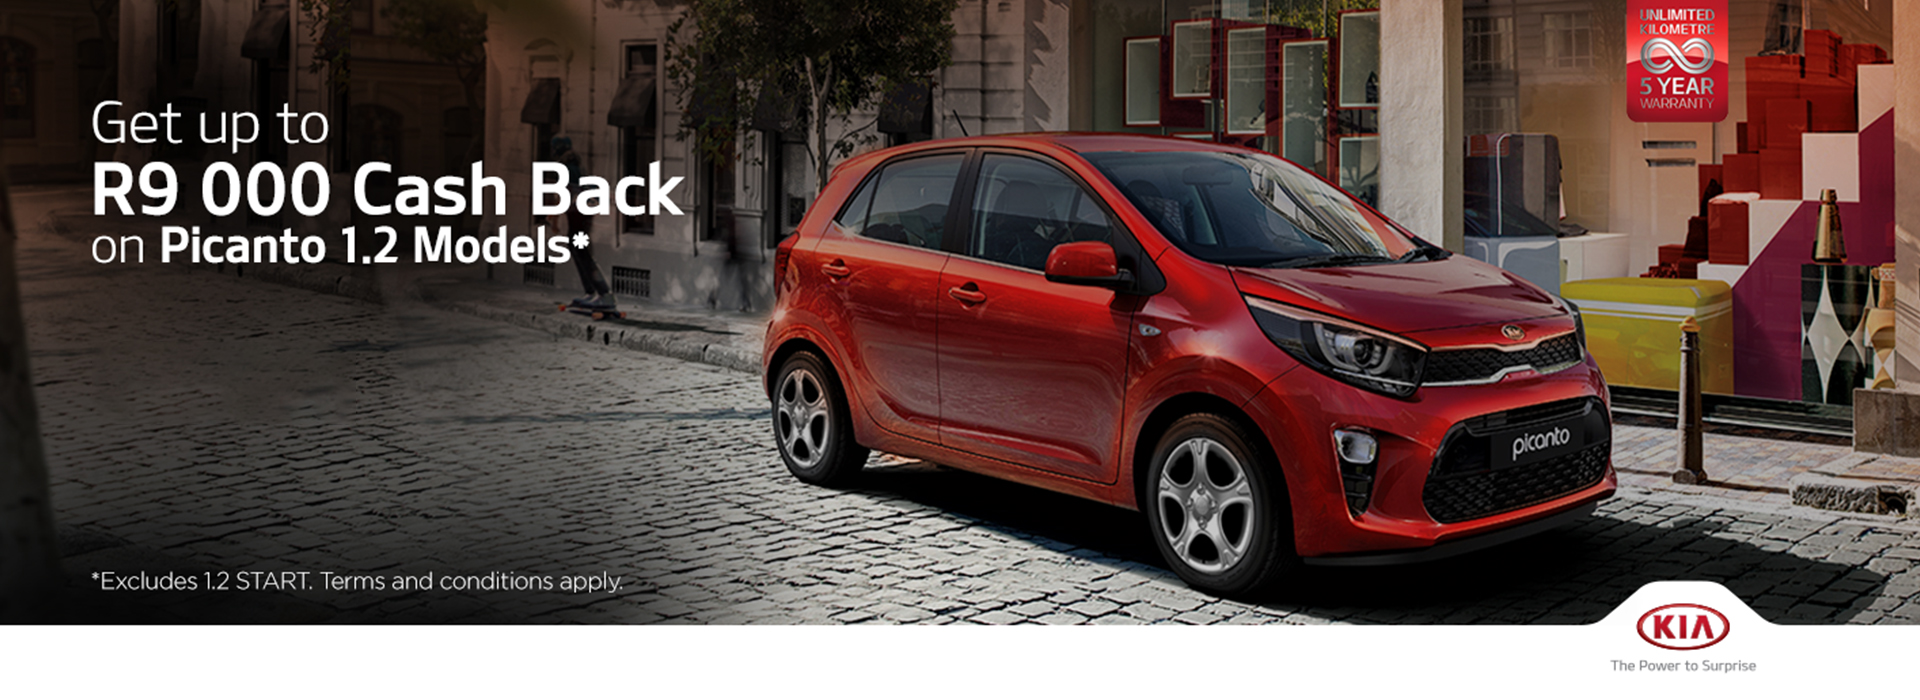 Picanto Offer